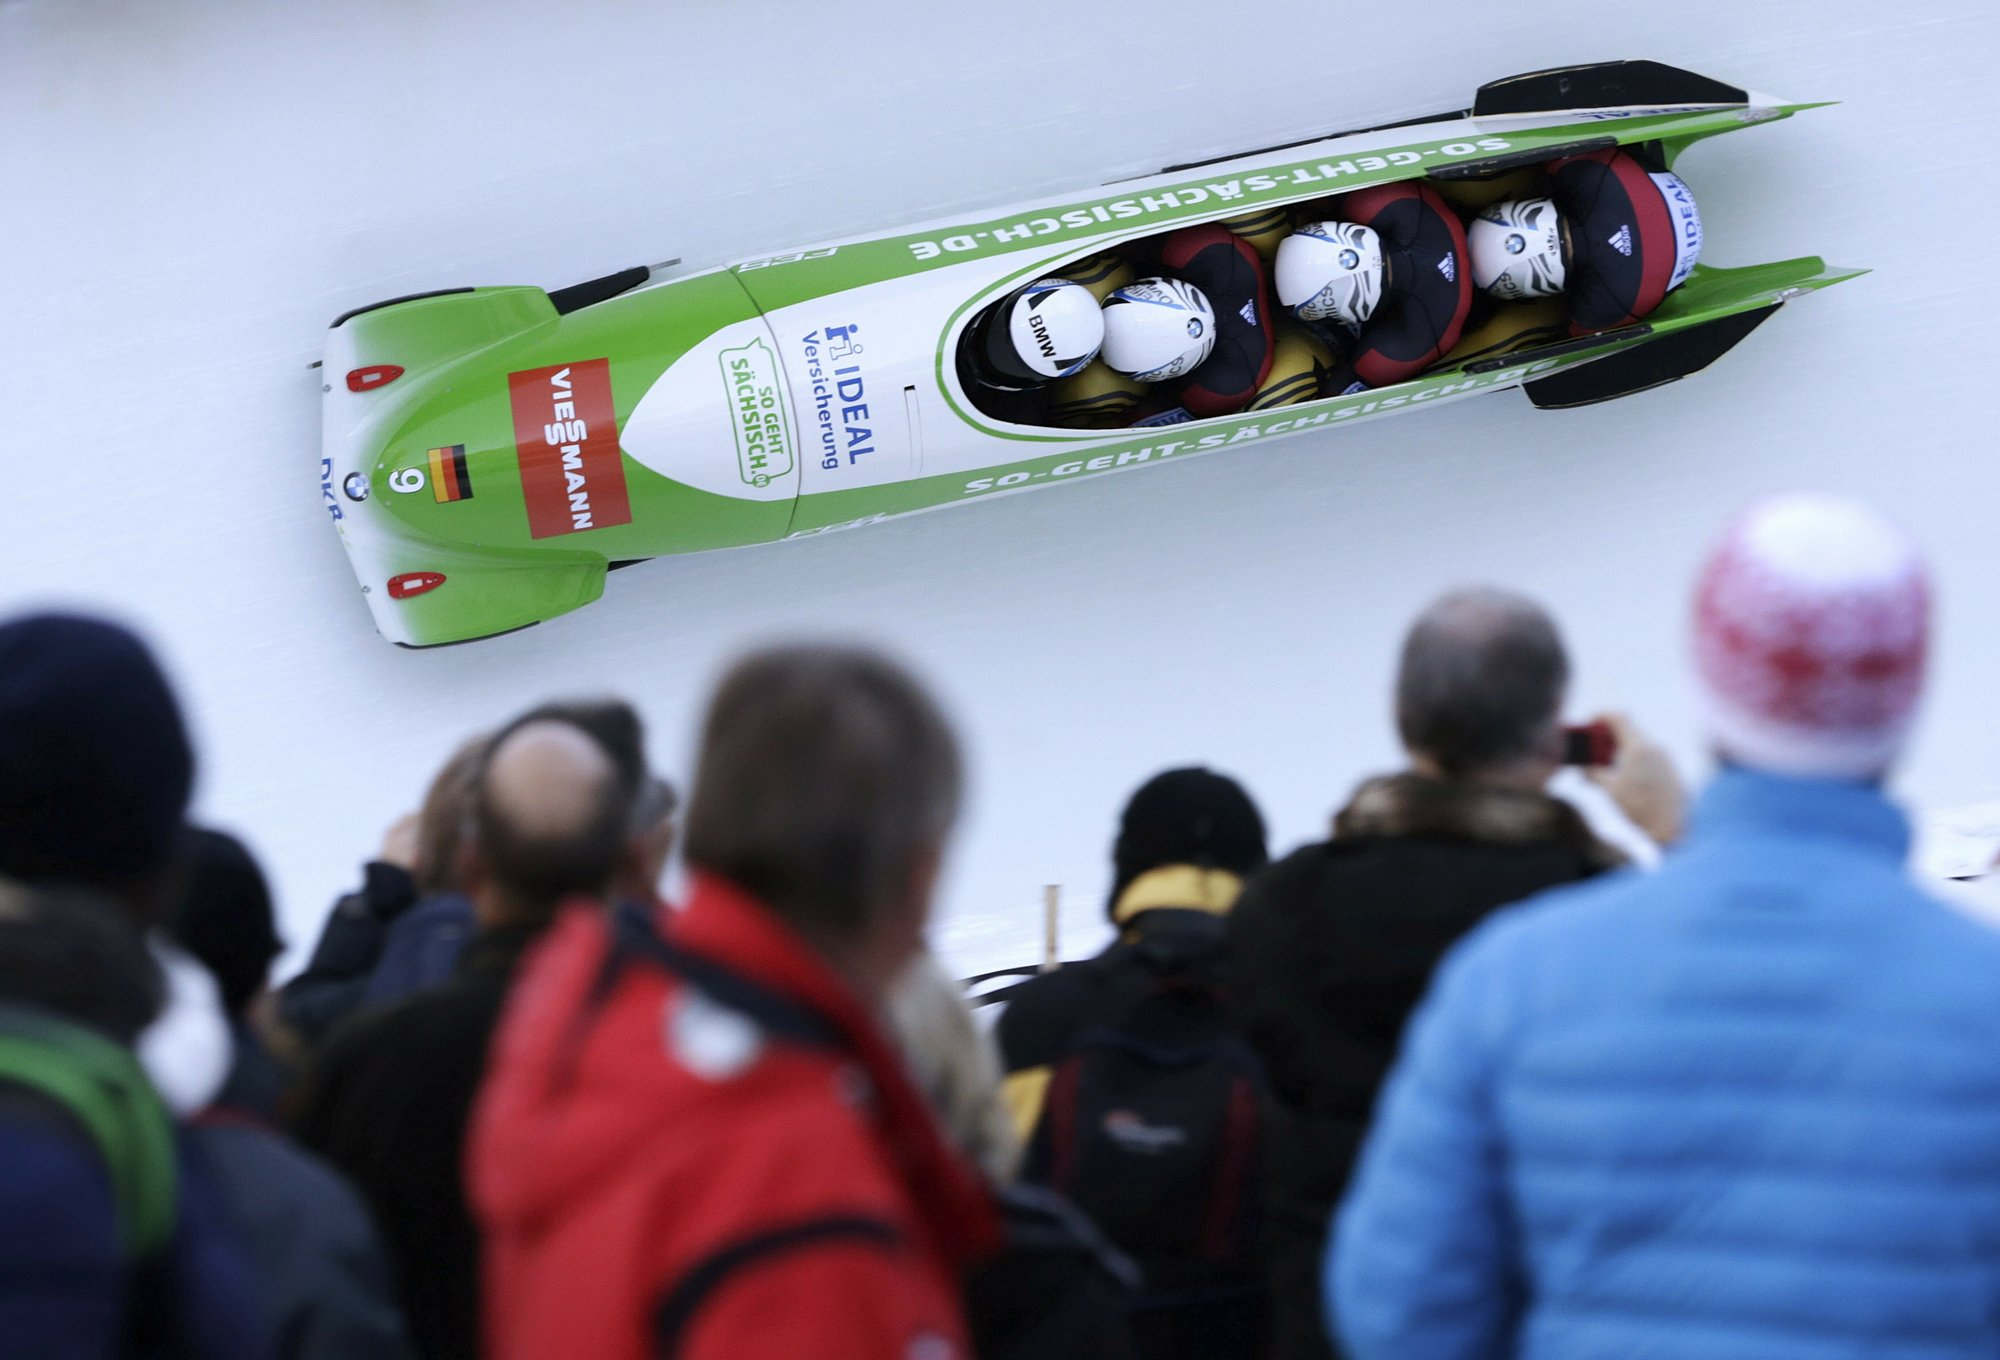 2026 Olympics in Italy could slide over border to St Moritz